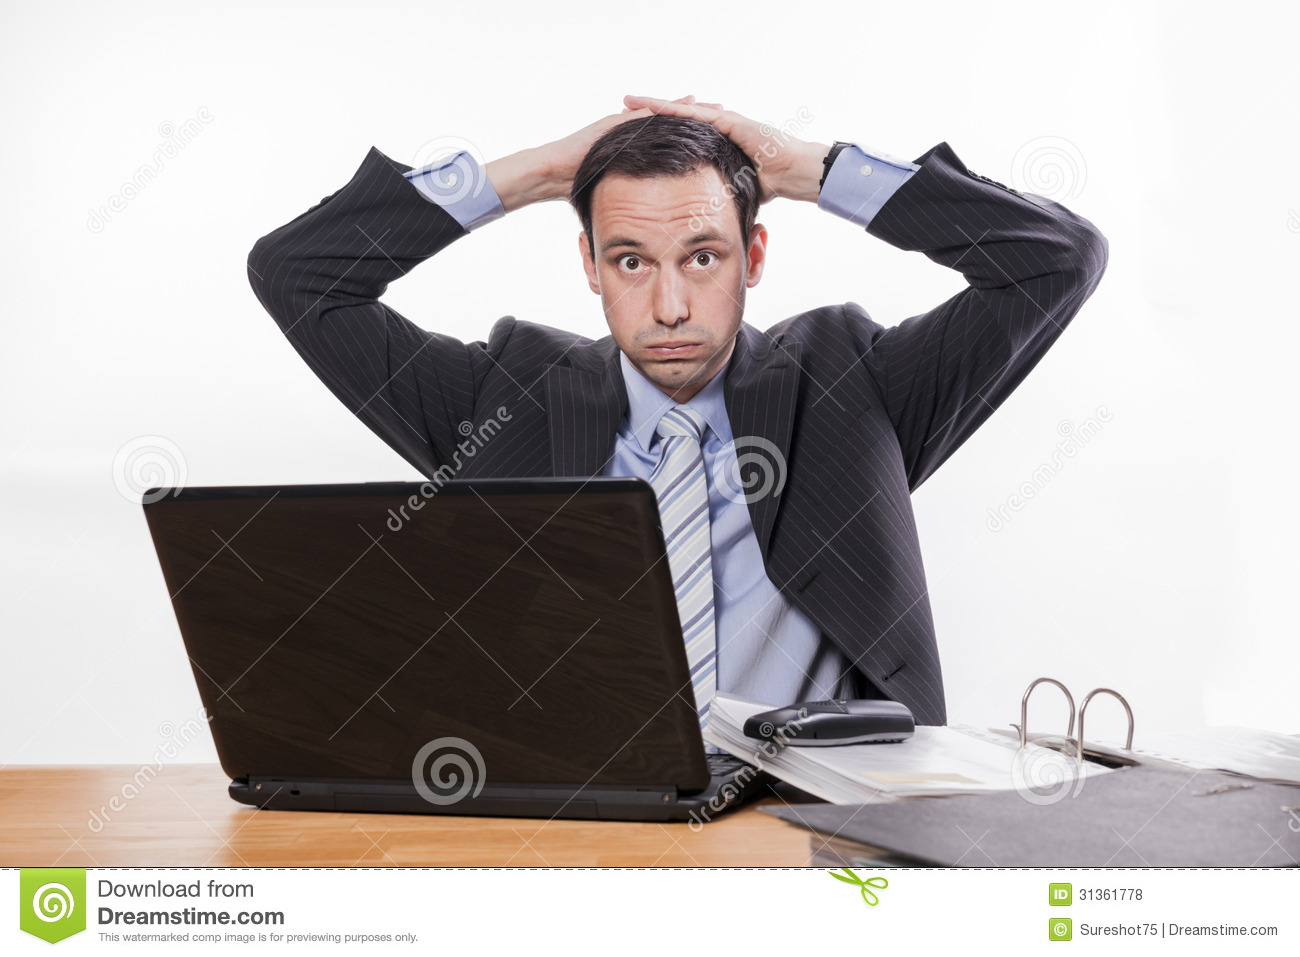 Office situations expressions stressed manager too much work